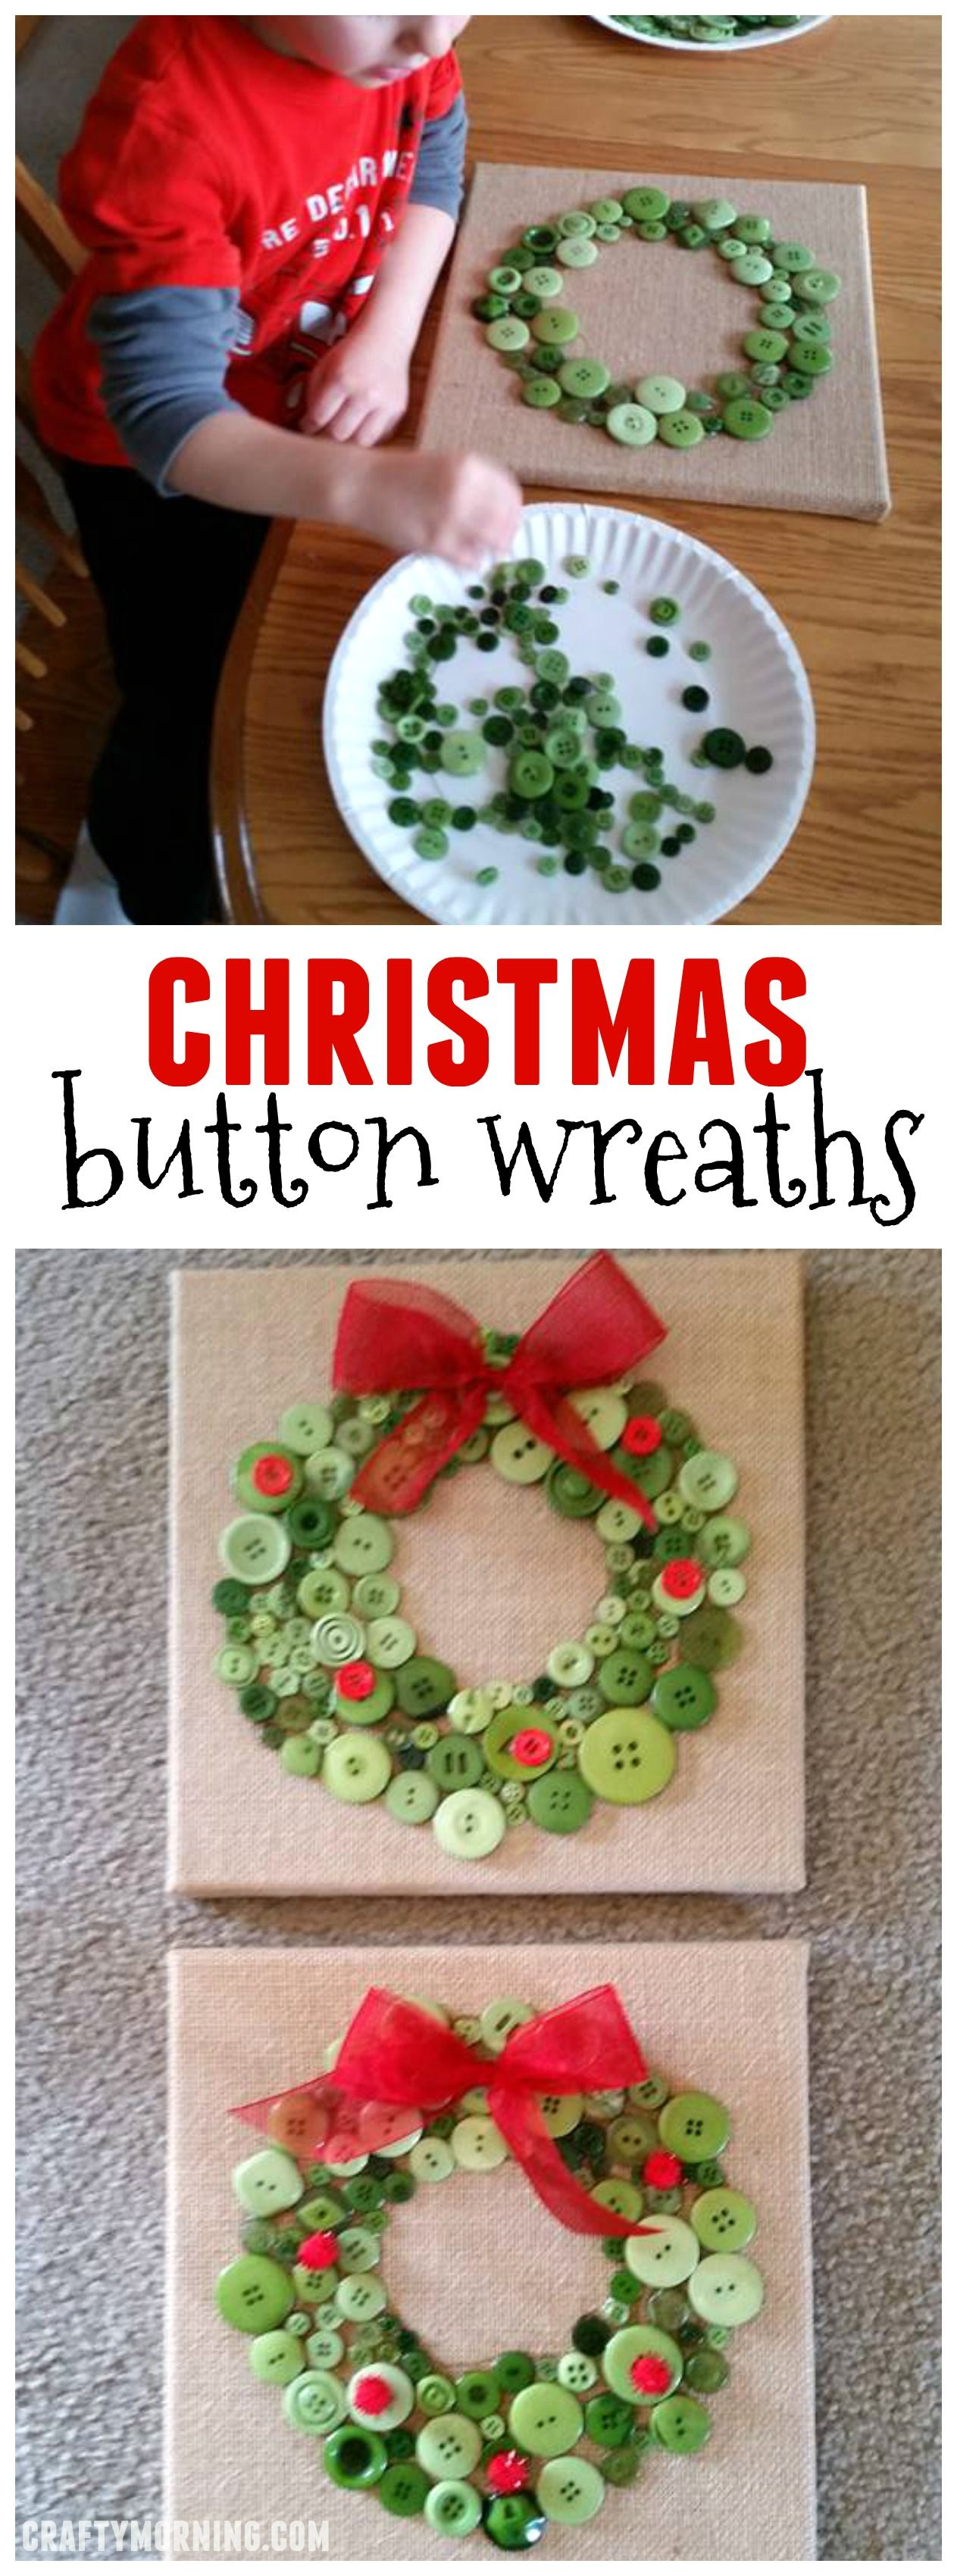 Christmas button wreaths for a kids craft...sooo cute!! These ...